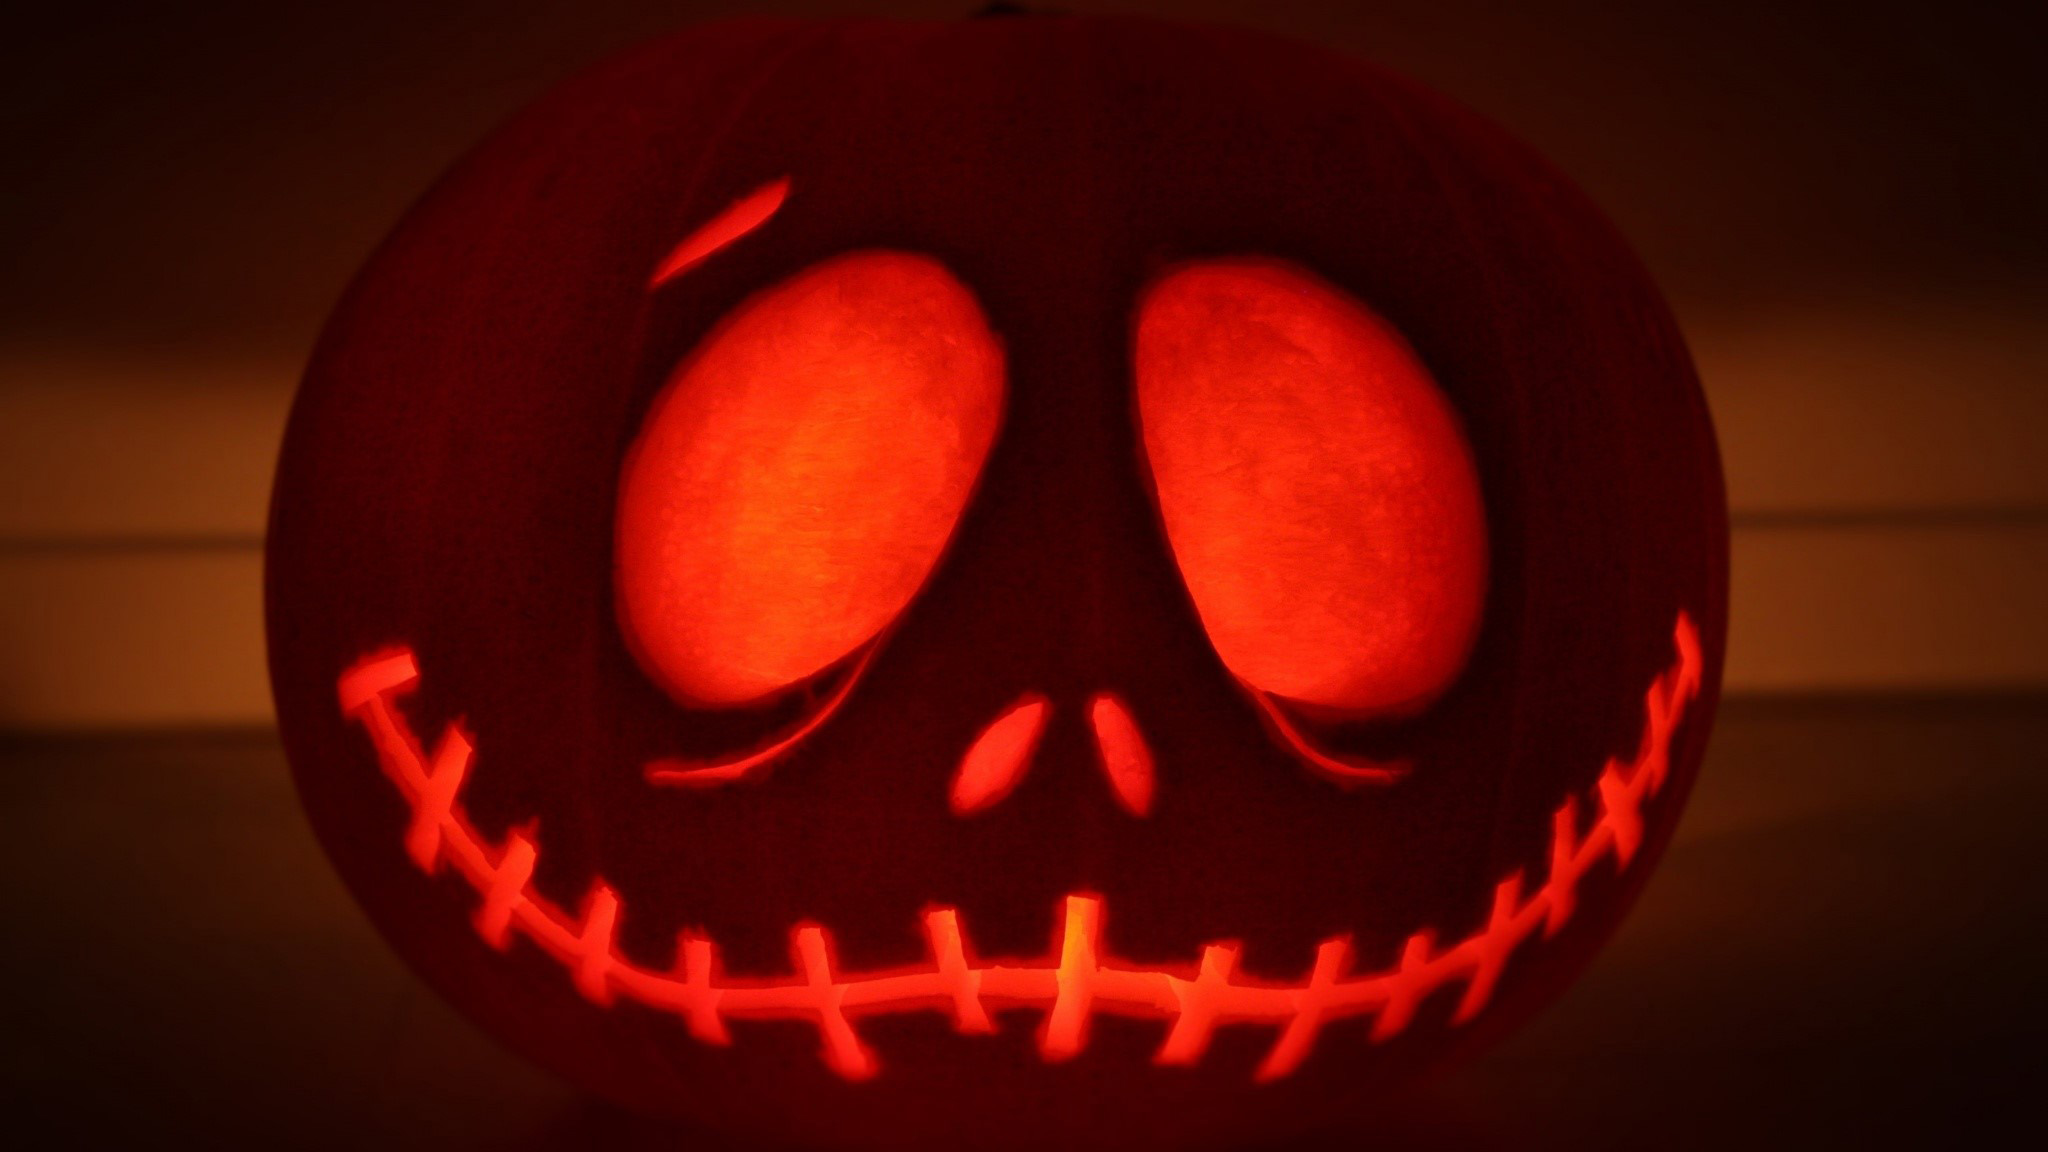 Wallpaper Pumpkin Jack Skellington